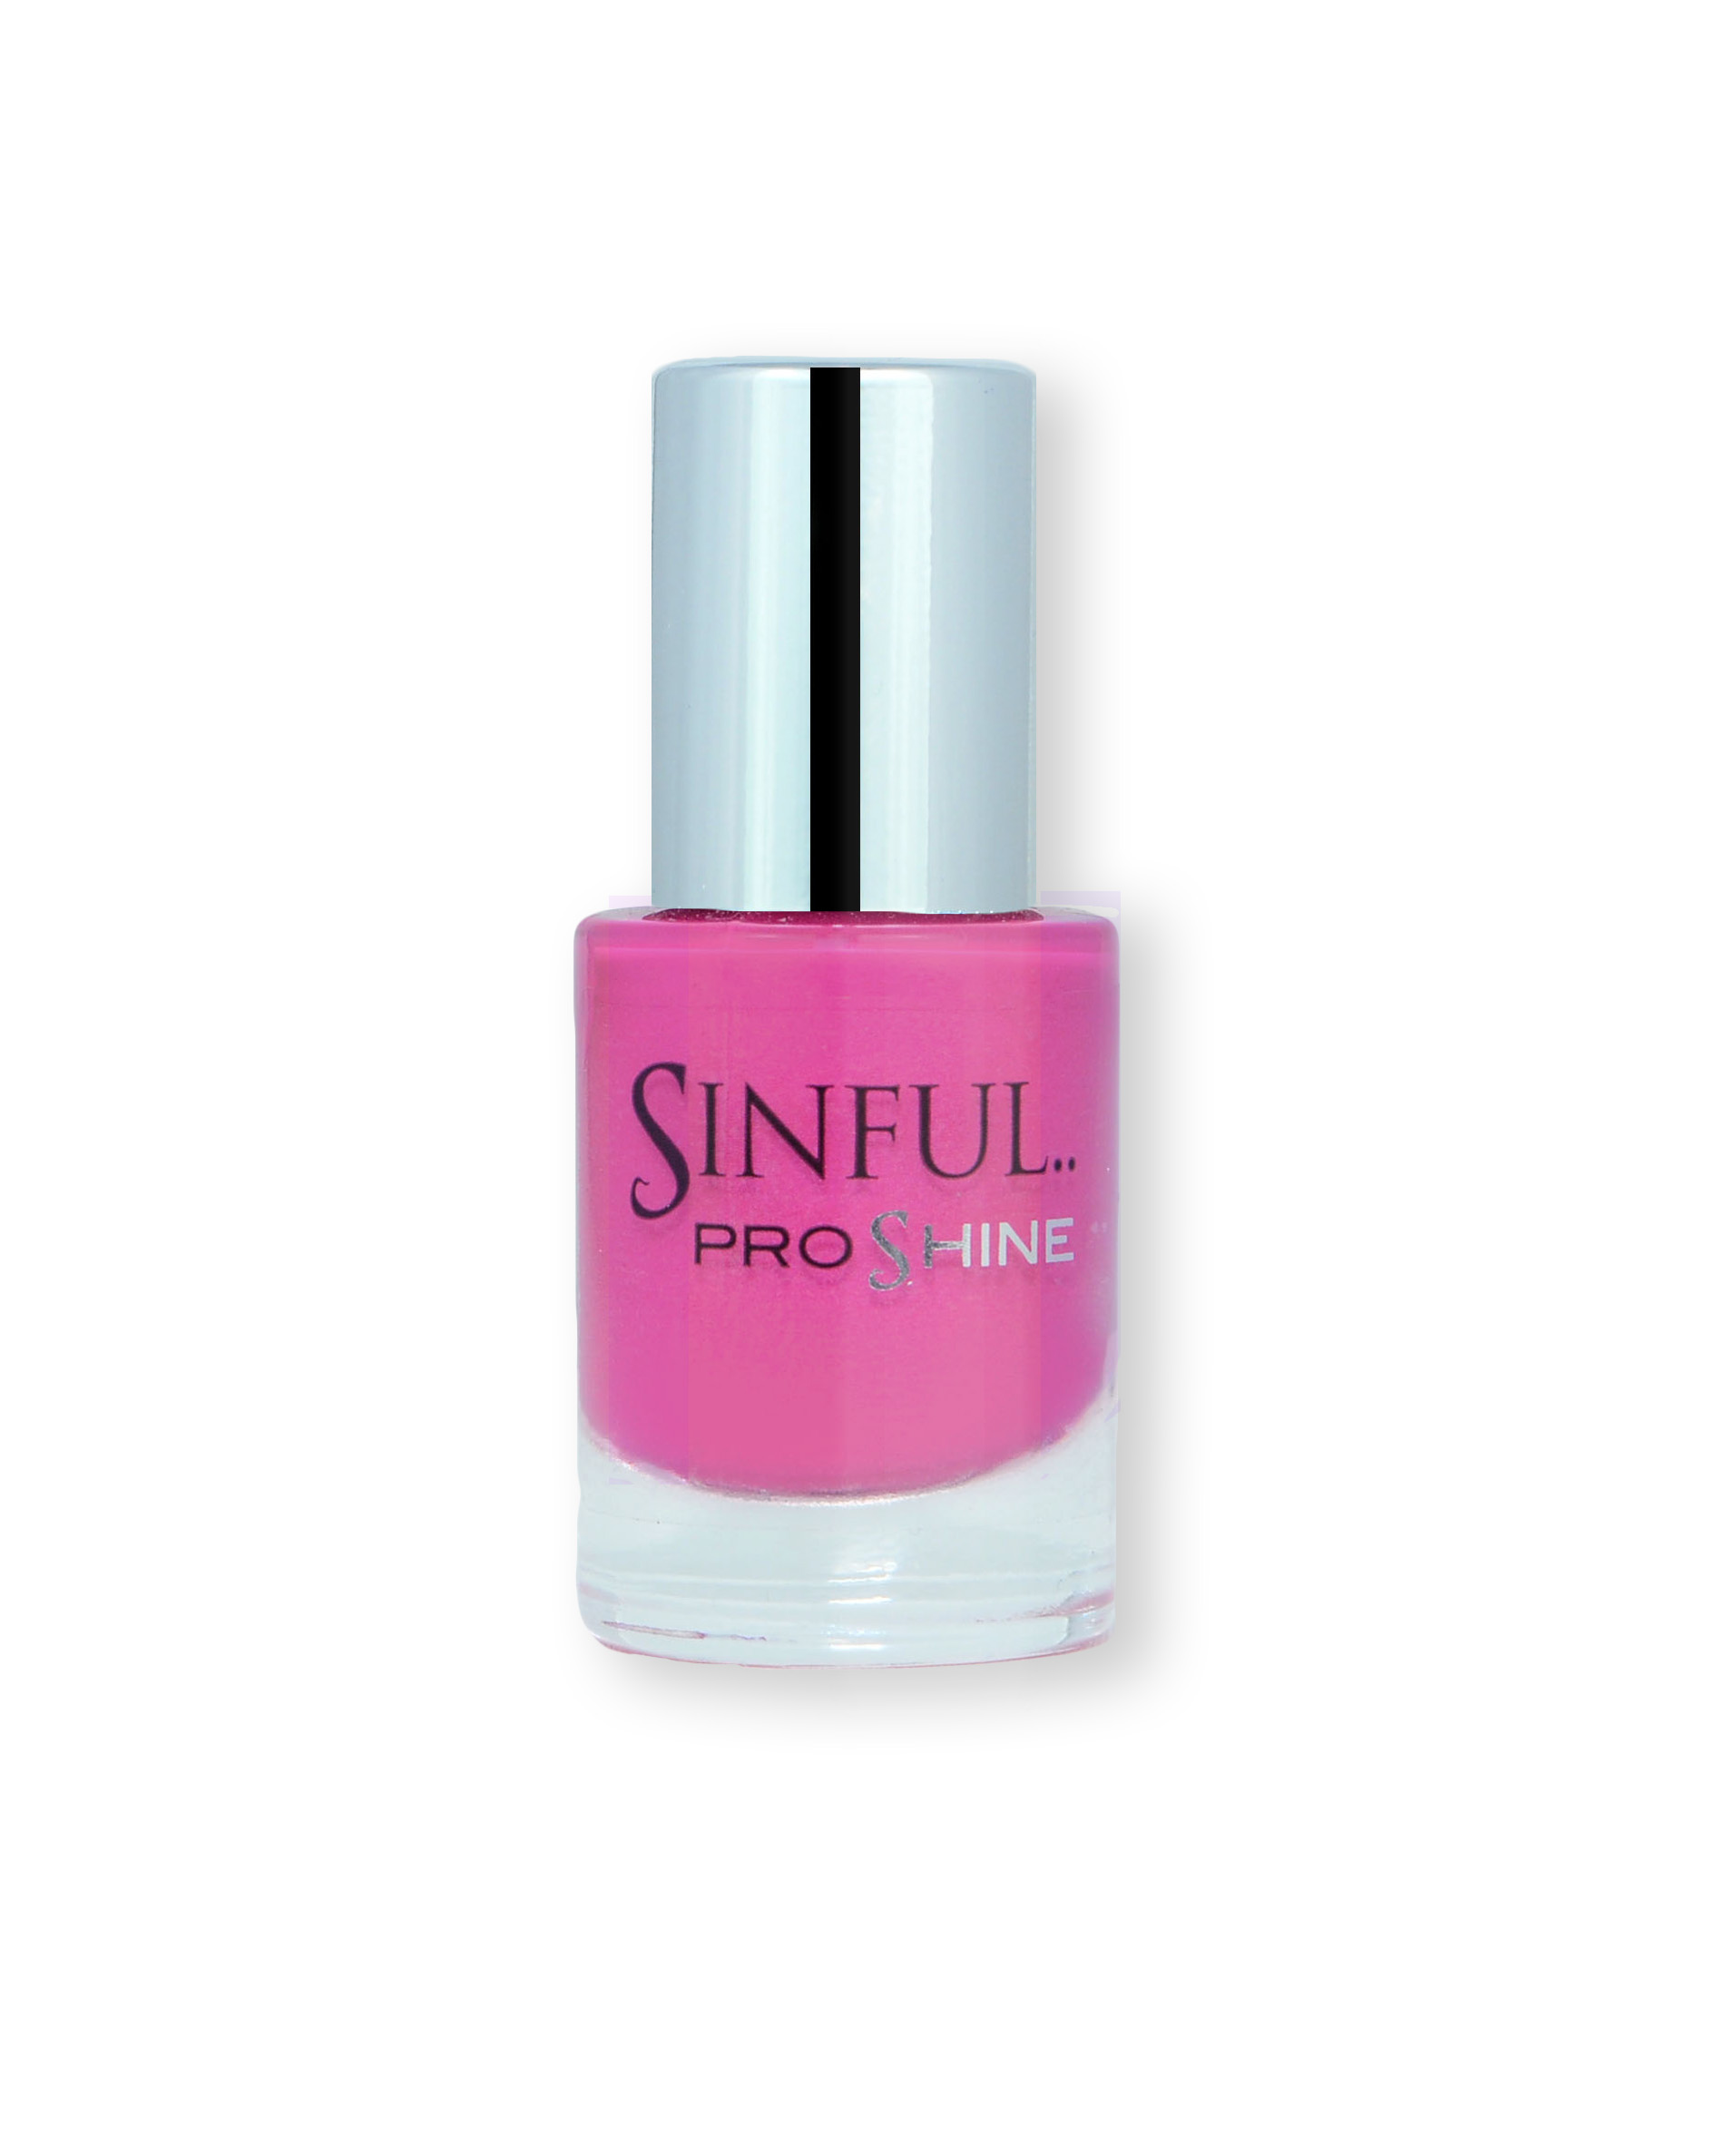 Sinful PROshine is a revolution into top spec imitation gel-like formula, easy application, full coverage and a sleek finish. Spoil yourself with the choice of 42 shades, expertly formulated with the finest grade of pigments. Fortune: Orchid pink with a subtle pearl